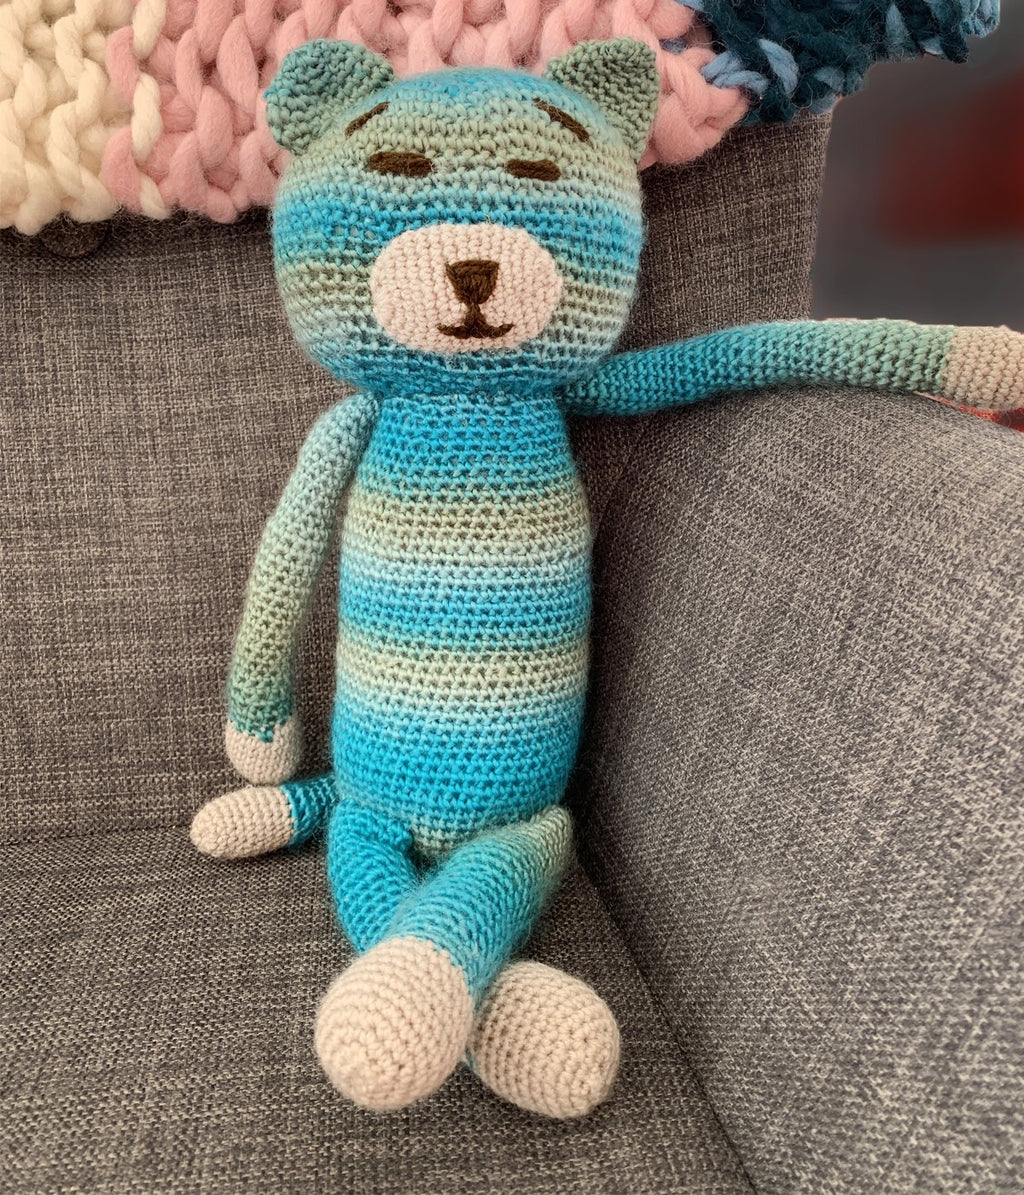 Paisley Lounge presents Amigurumi Cat - Truzealia